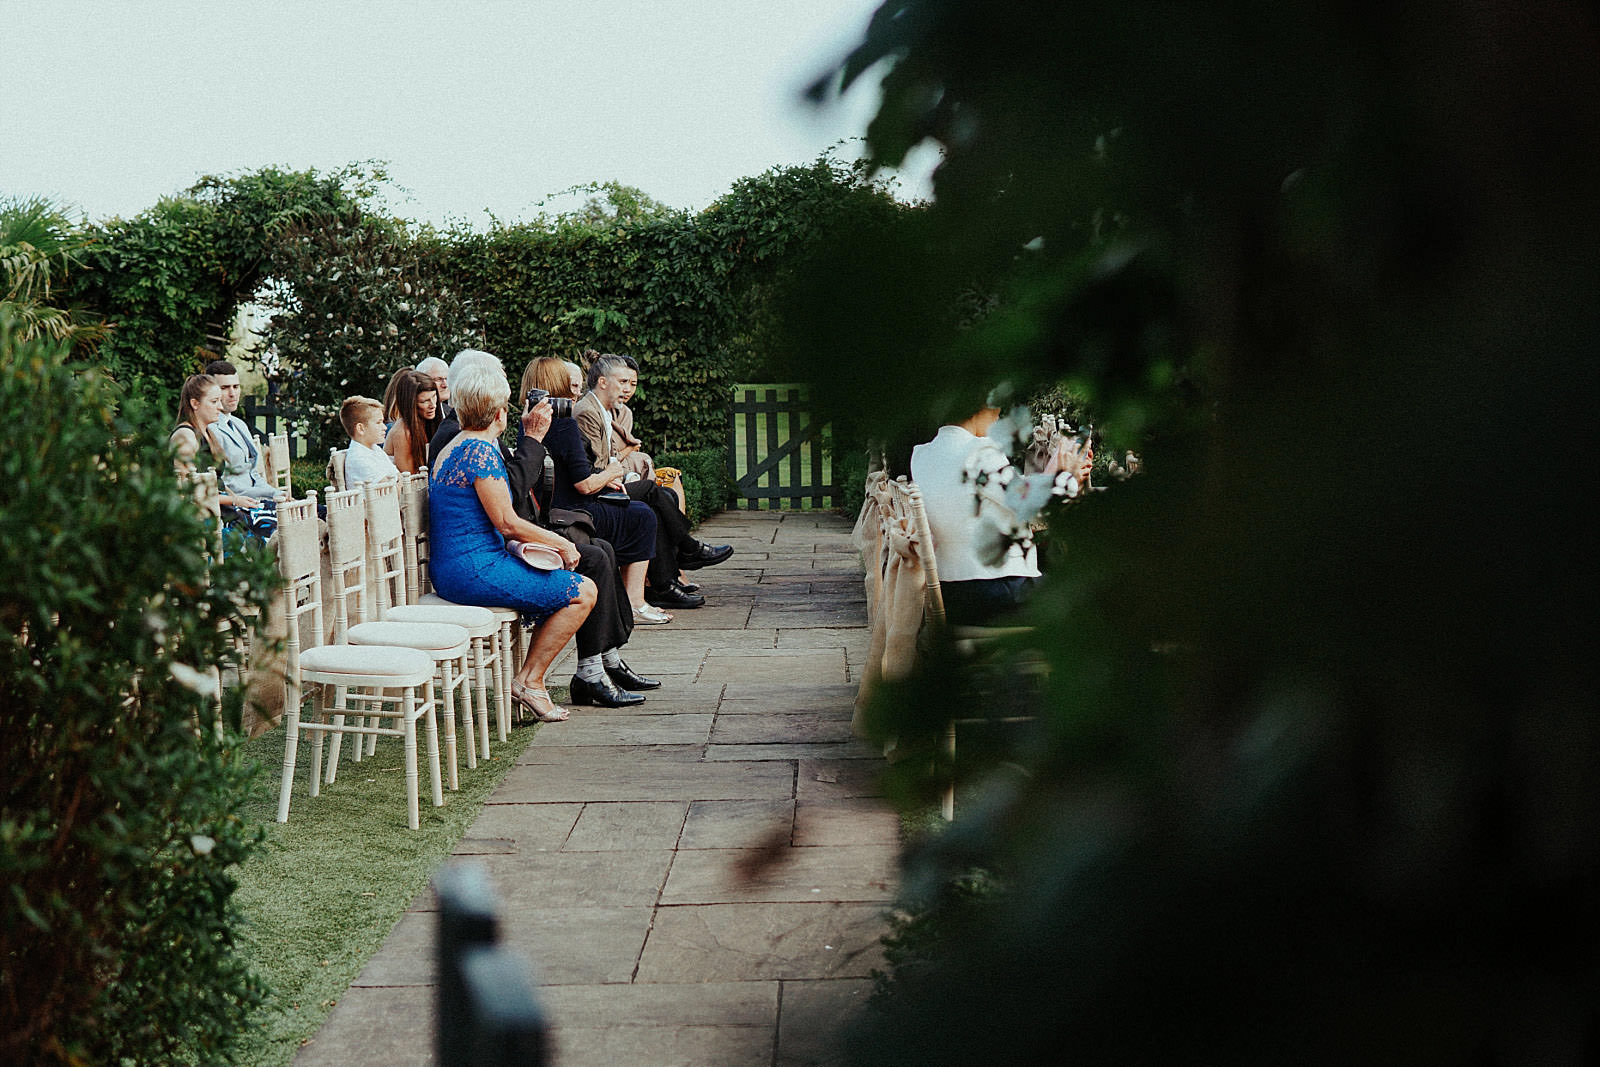 seated guests at an outdoor ceremony